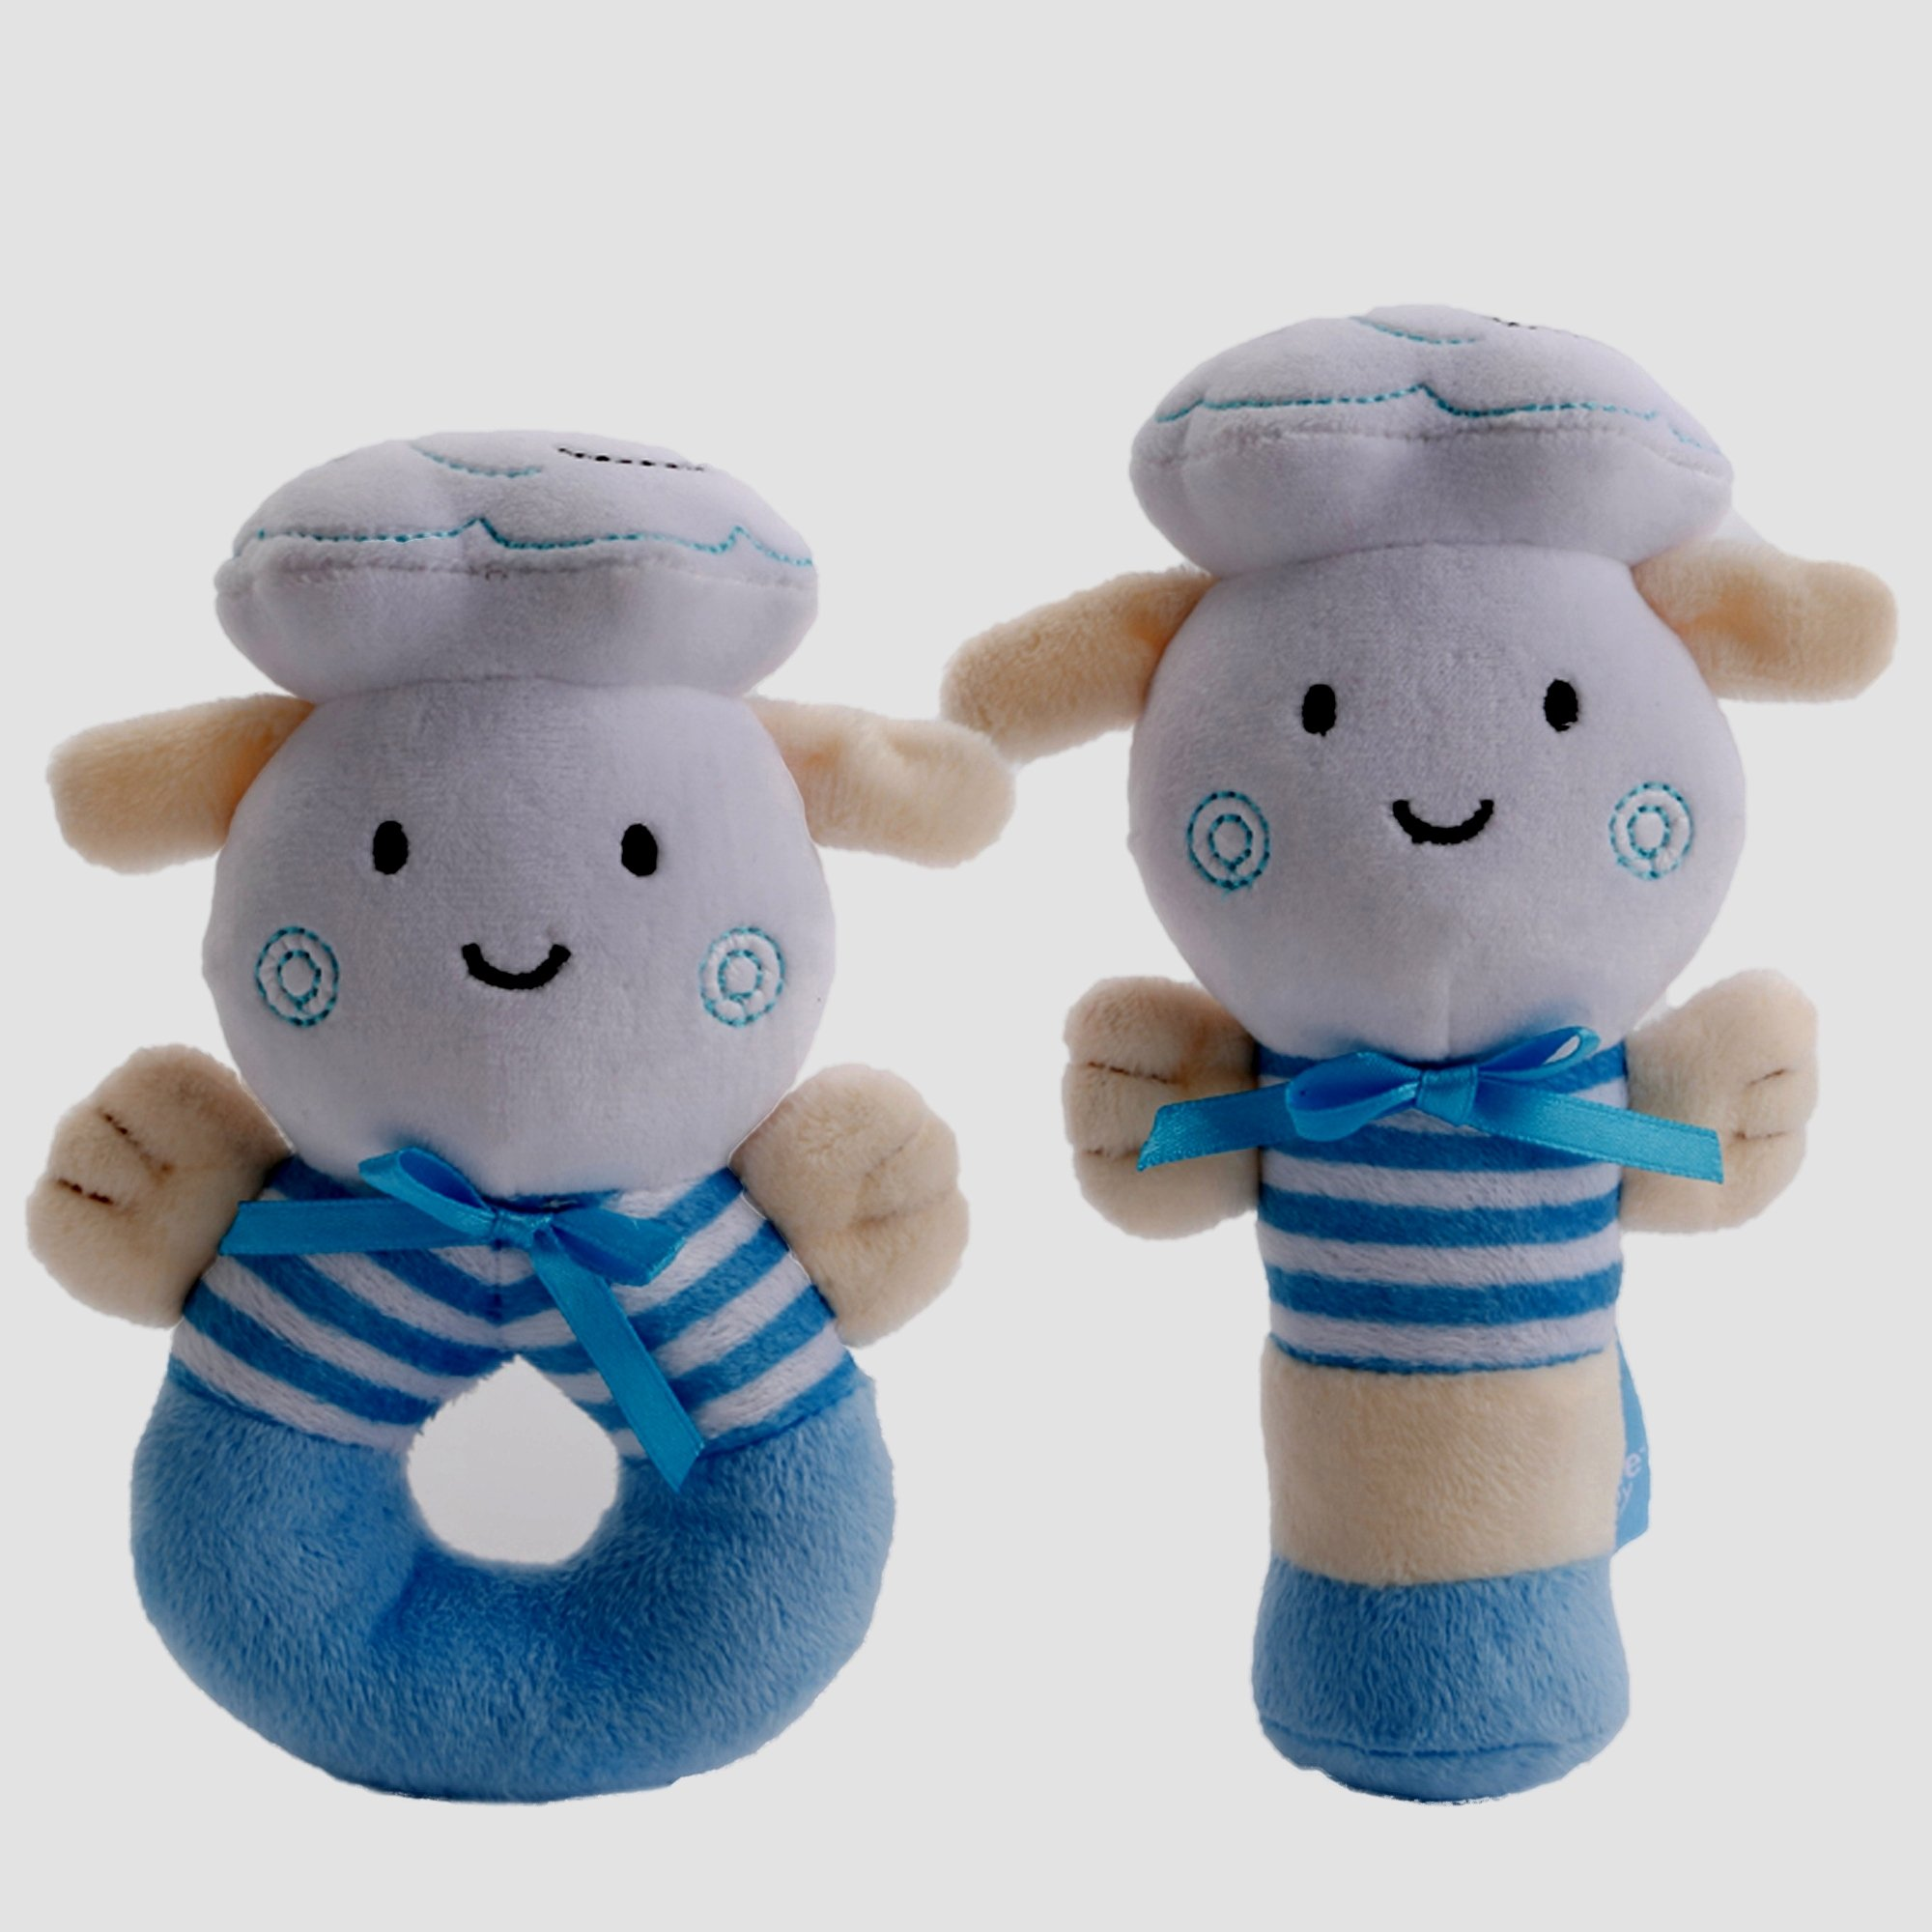 Premium Quality-Soft Baby Rattle- Plush- Sensory-Activity Toy Blue-Baby Shower Gifts, a cute Baby Boy Gifts-Baby Boy Toys